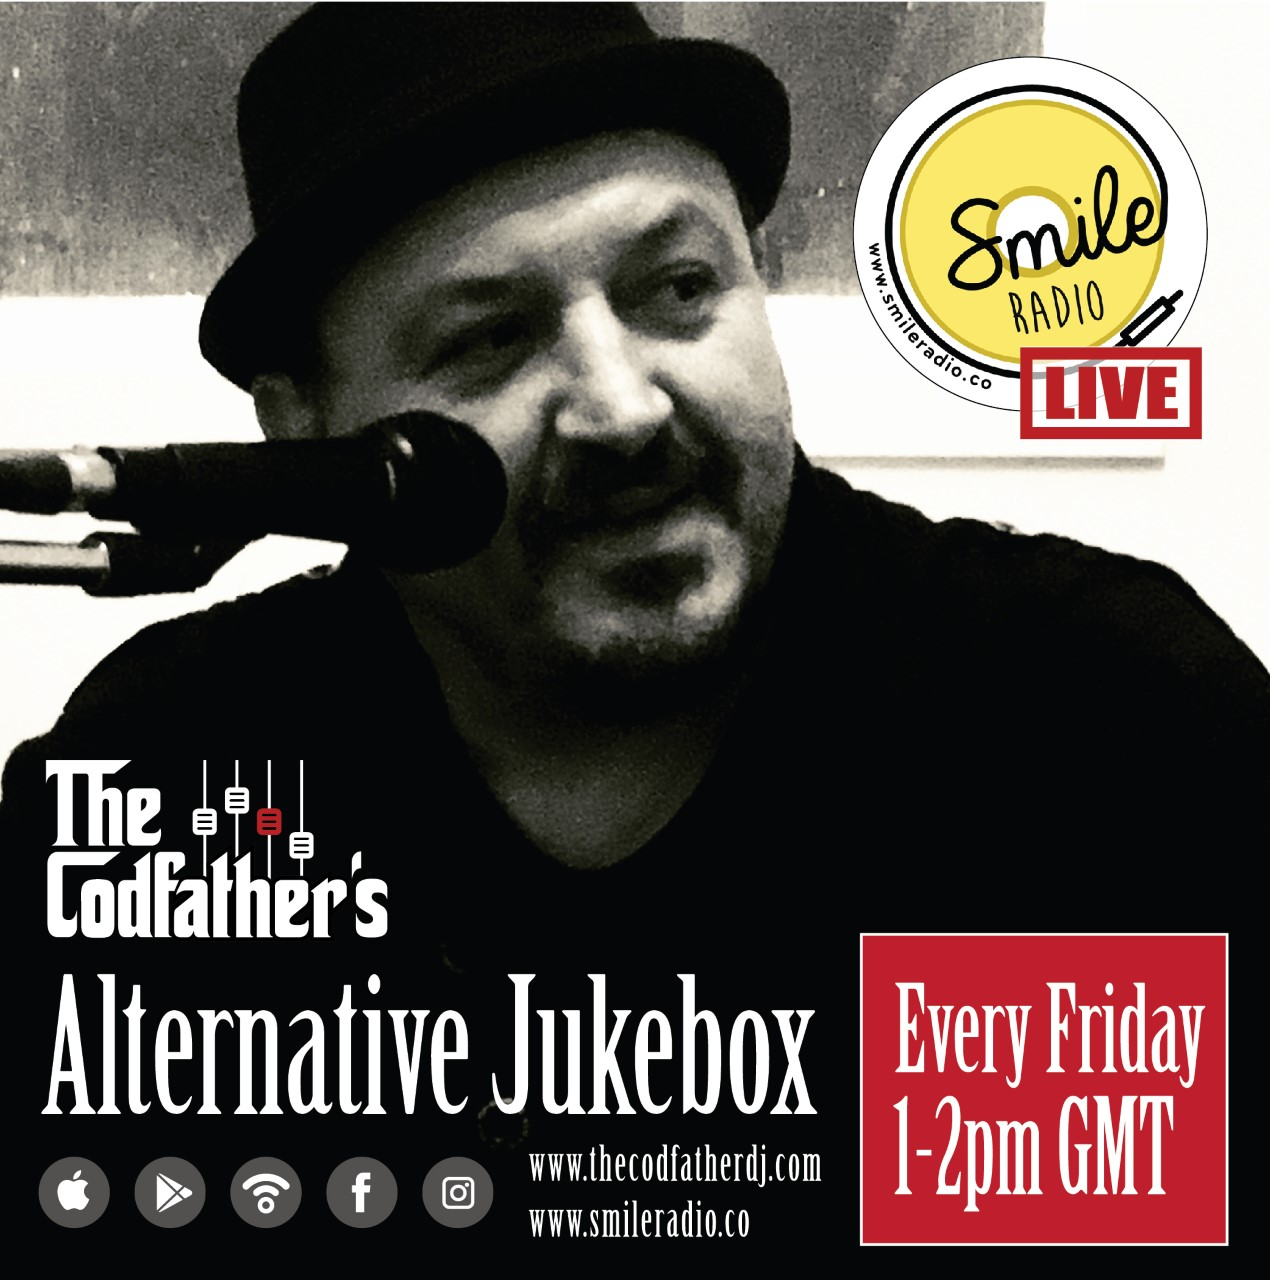 The Codfathers Late Night Alternative Jukebox - 24.05.2019